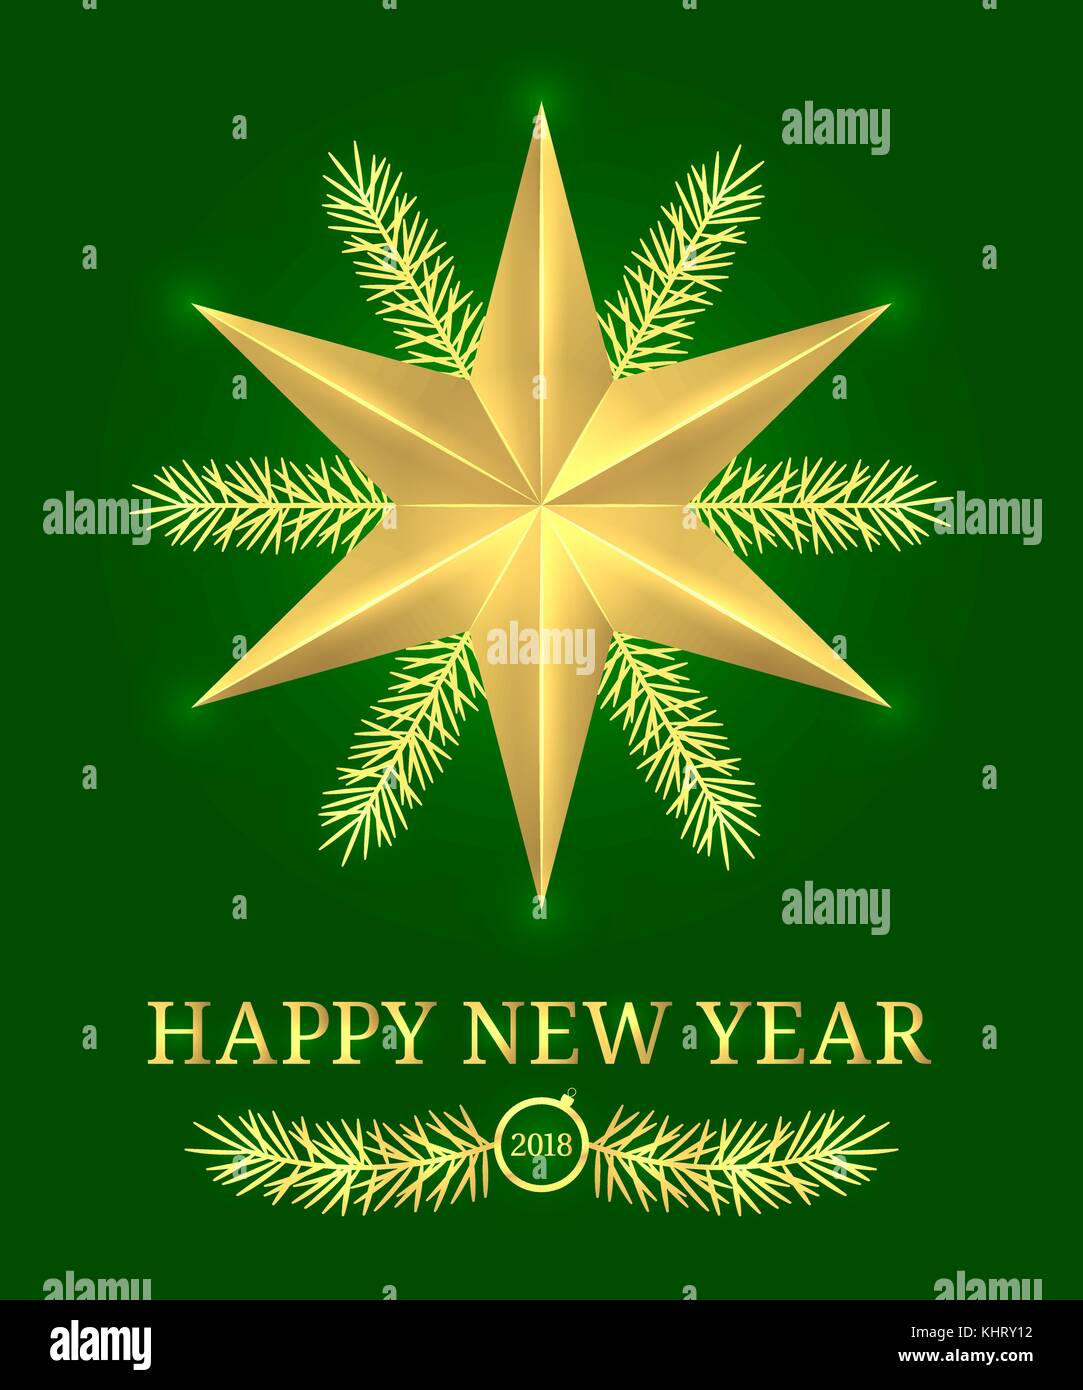 Happy new year 2018 vector holiday banner with new year greeting in happy new year 2018 vector holiday banner with new year greeting in golden and green color golden shining star text and spruce branch m4hsunfo